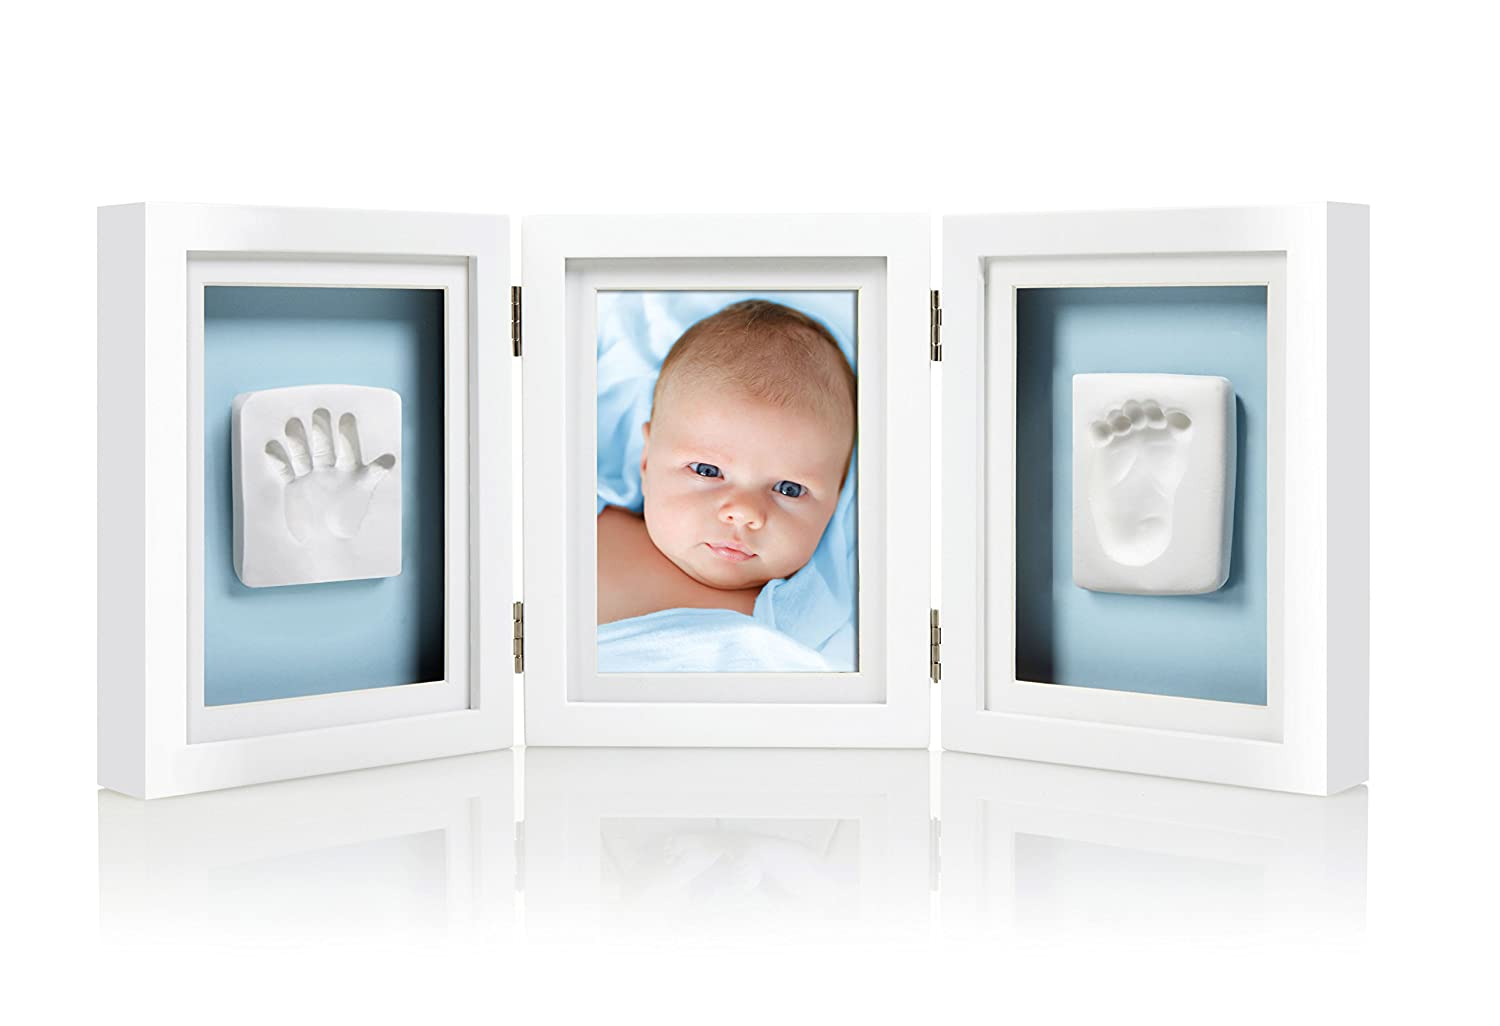 Pearhead Babyprints Newborn Baby Handprint and Footprint Deluxe Desk Photo Frame & Impression Kit - Makes A Perfect Baby Shower Gift, White 21513